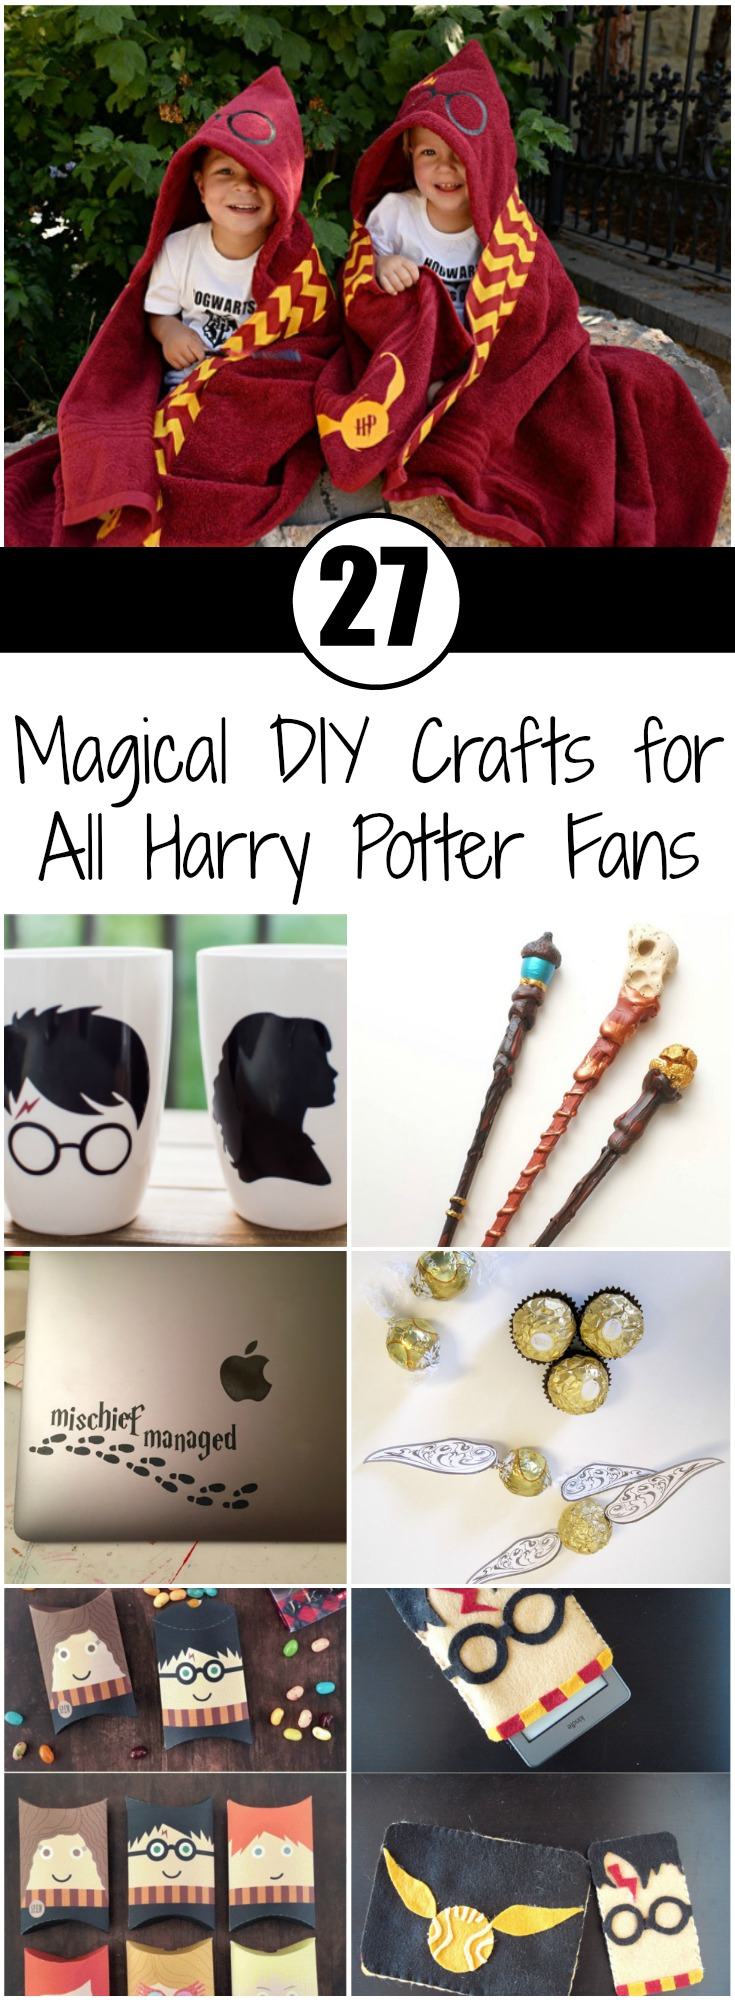 27 magical diy crafts for all harry potter fans page 20 of 28 27 magical diy crafts for all harry potter fans solutioingenieria Choice Image